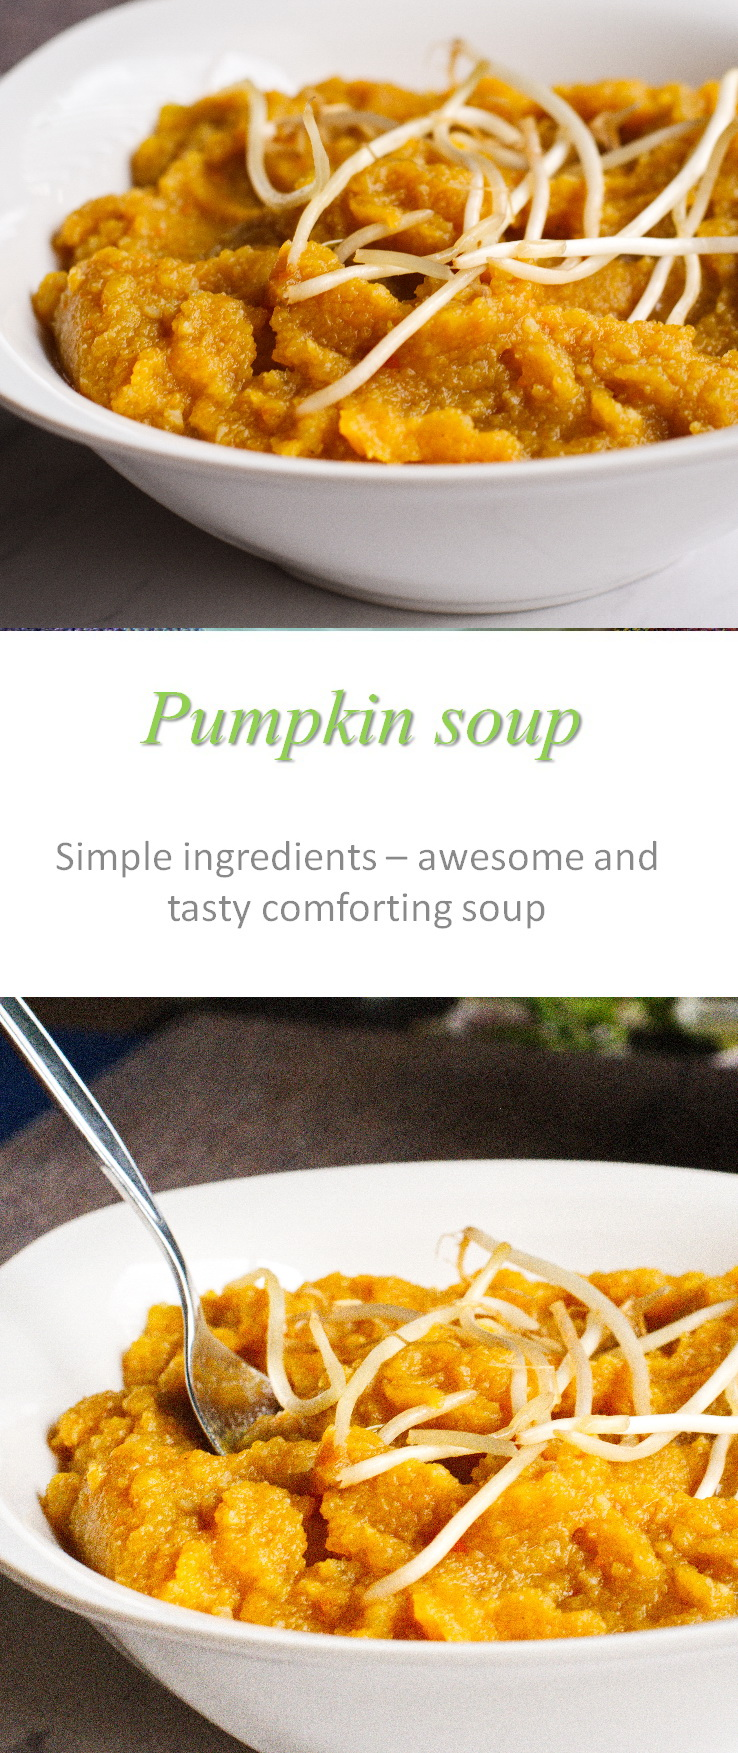 A simple pumpkin soup that packs a punch of flavor, with all natural ingredients that avoid all the top 8 allergens. #pumpkinsoup